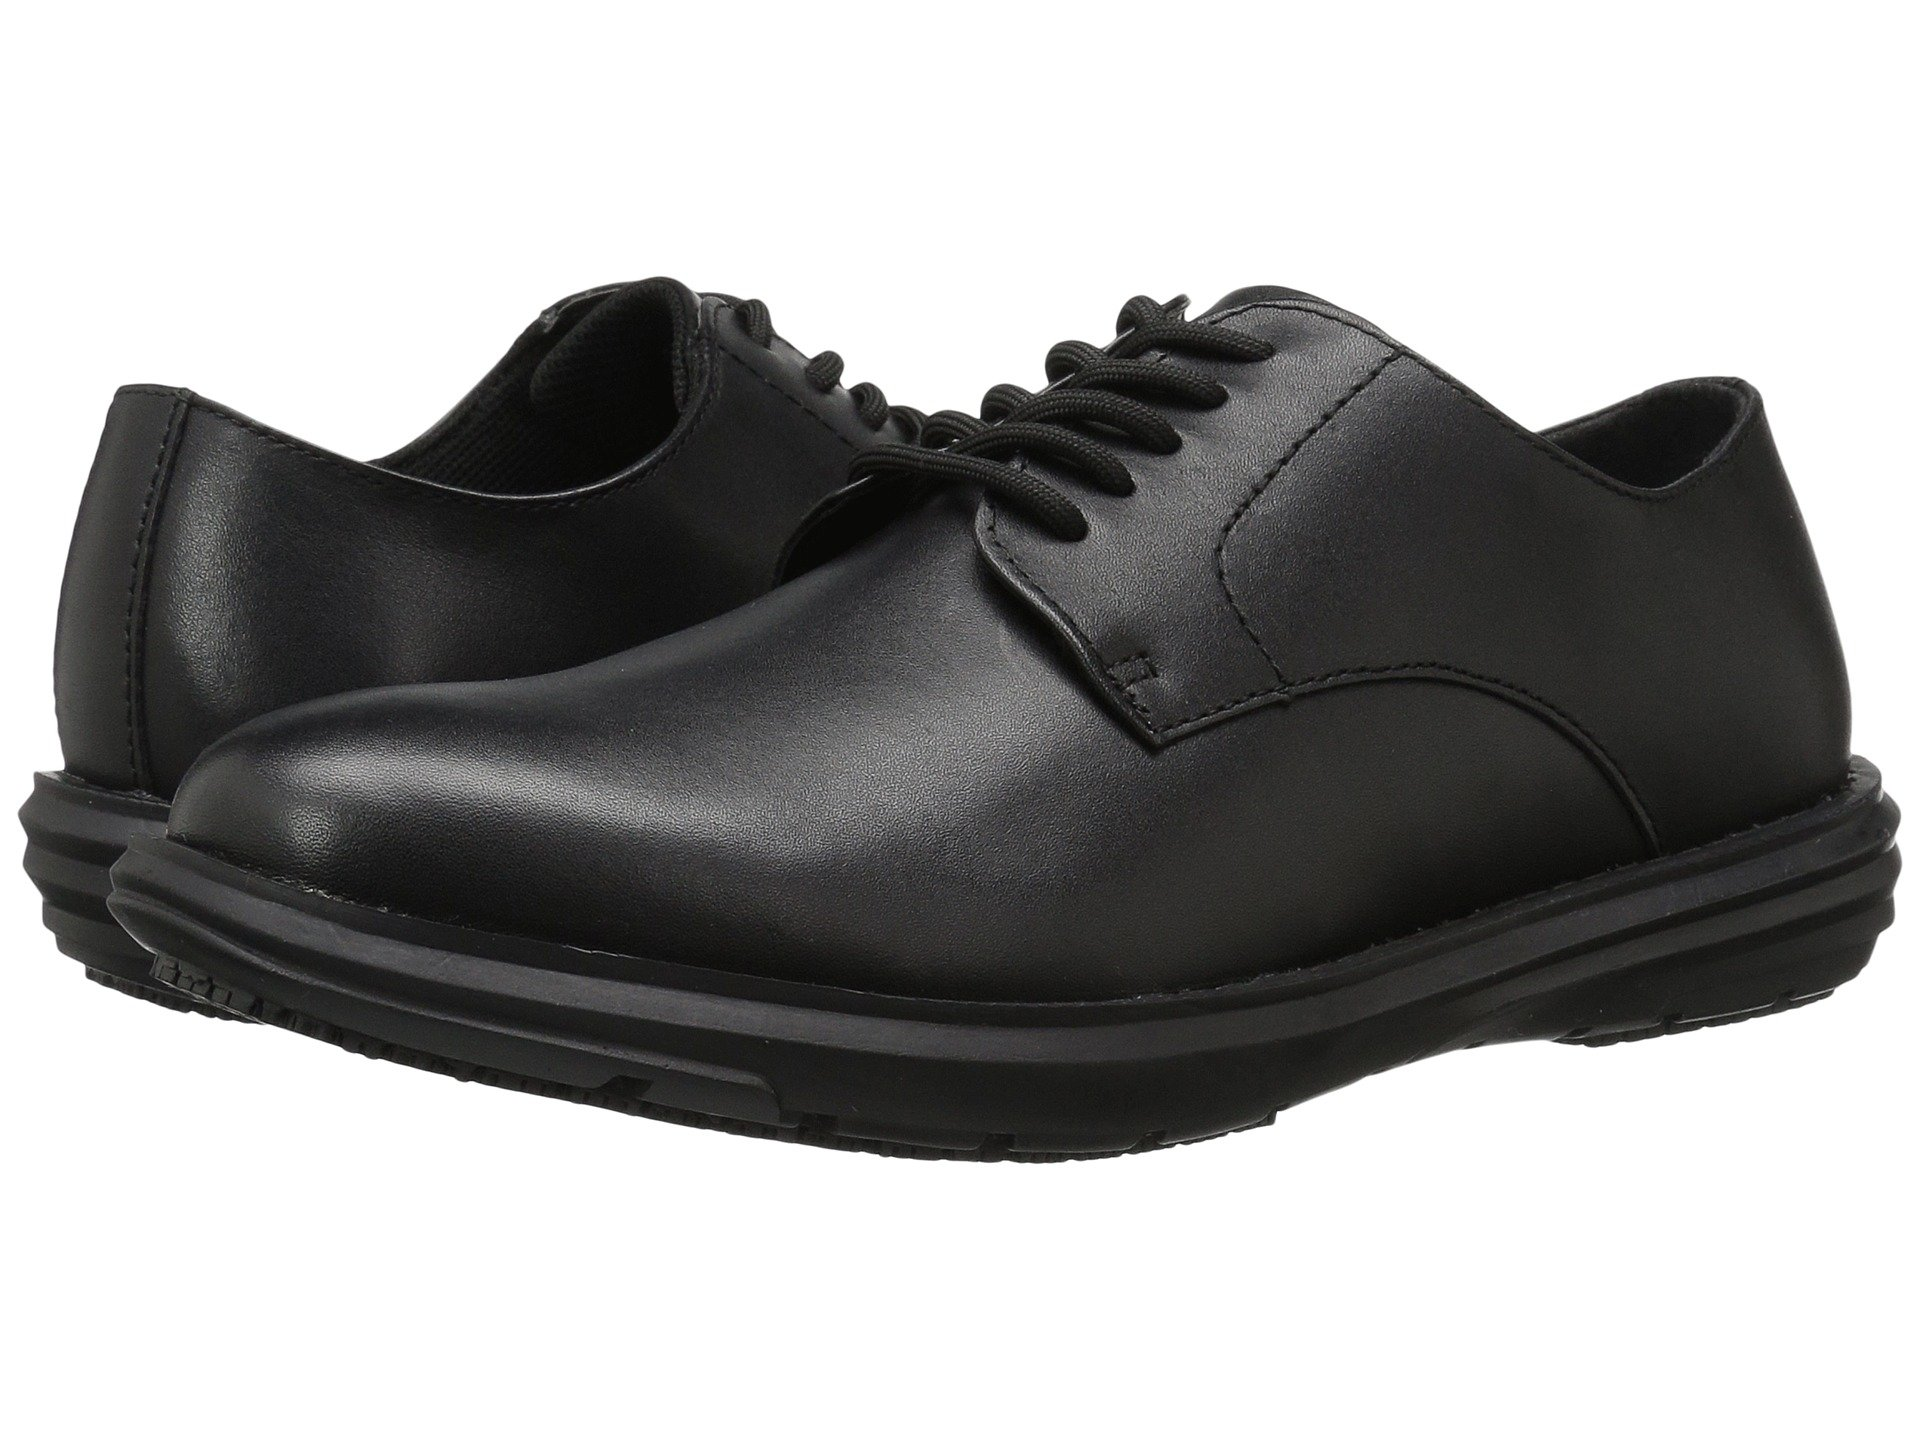 47a742704eb80f Men s Work   Duty Oxfords + FREE SHIPPING